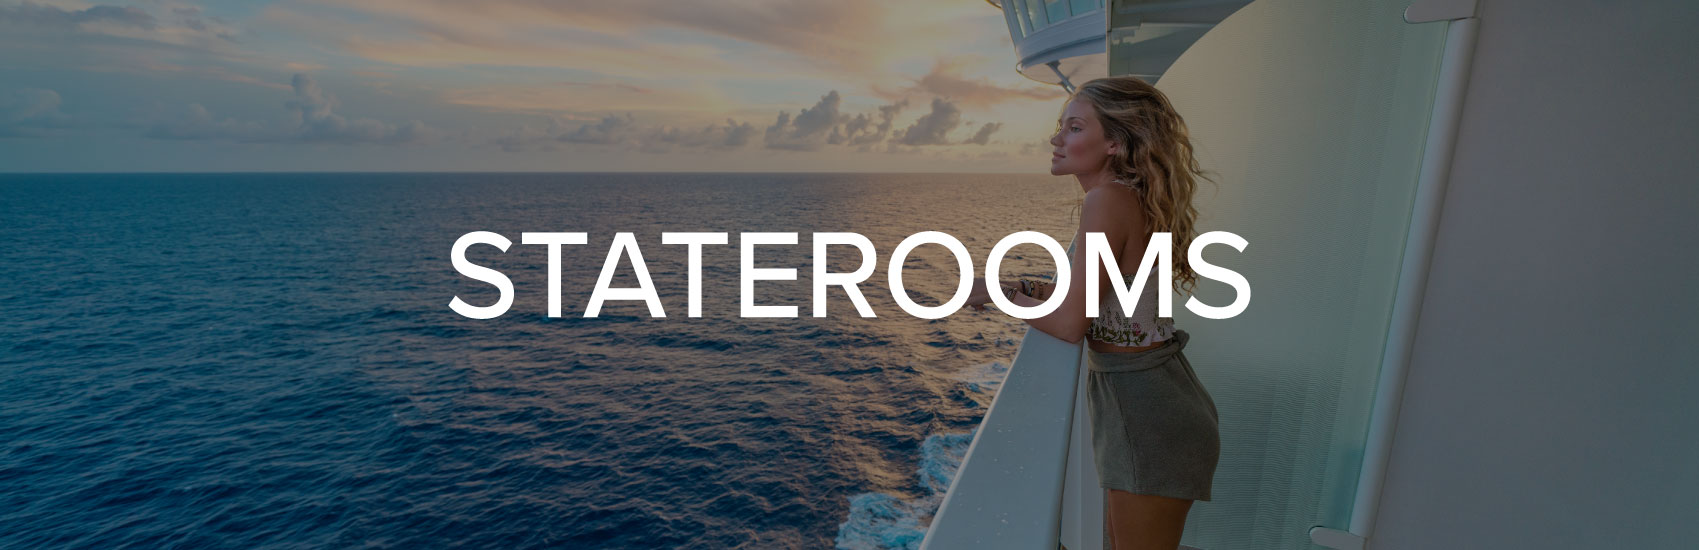 Royal Caribbean | Staterooms